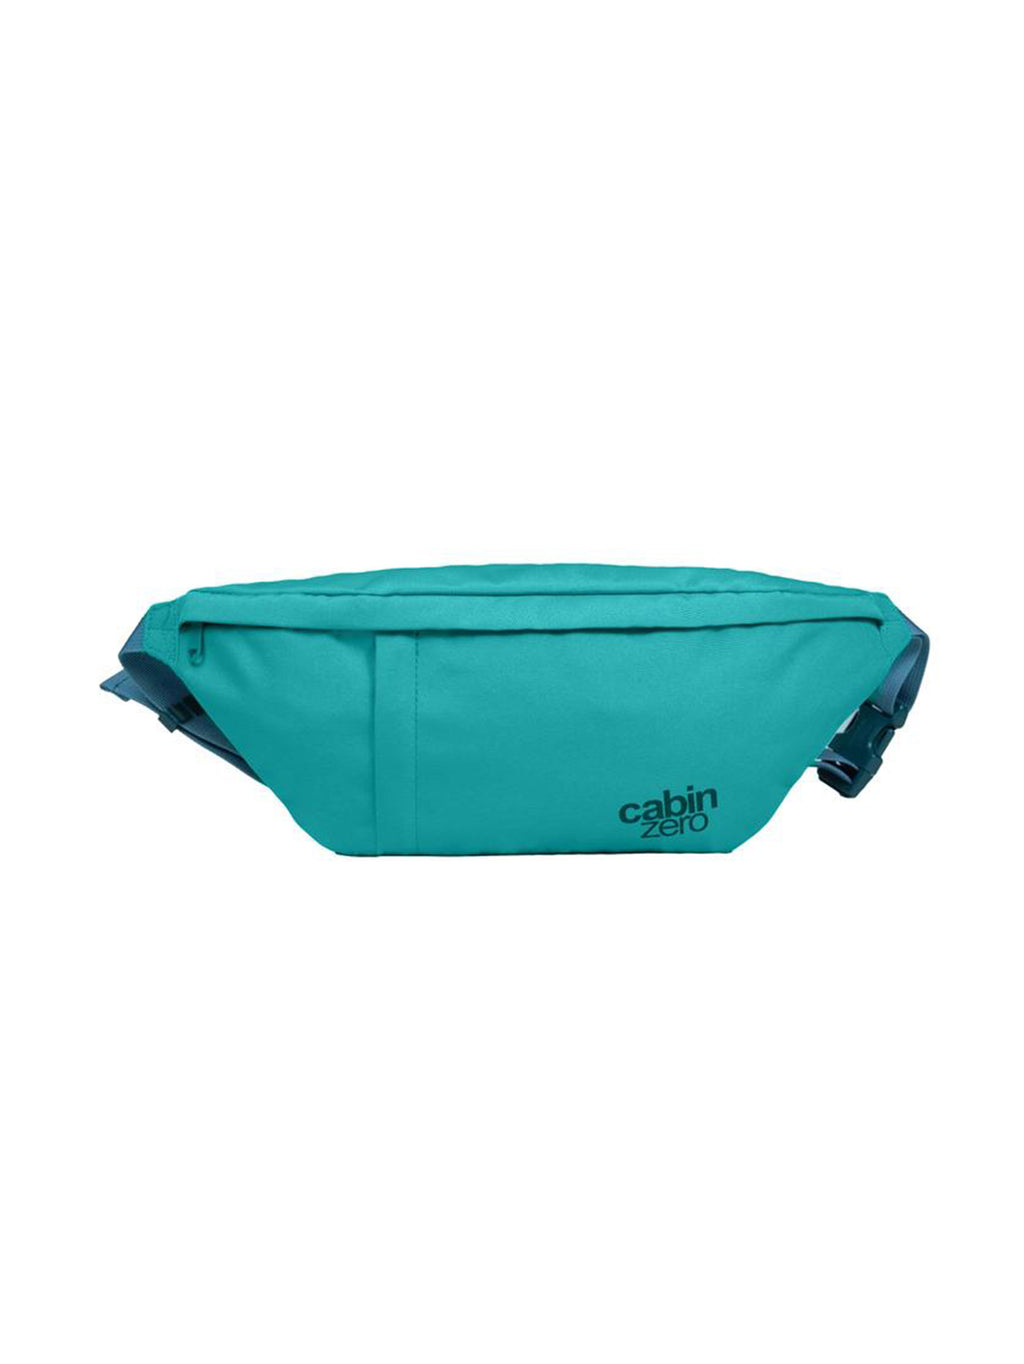 Cabinzero Hip Pack 2L in Boracay Blue Color